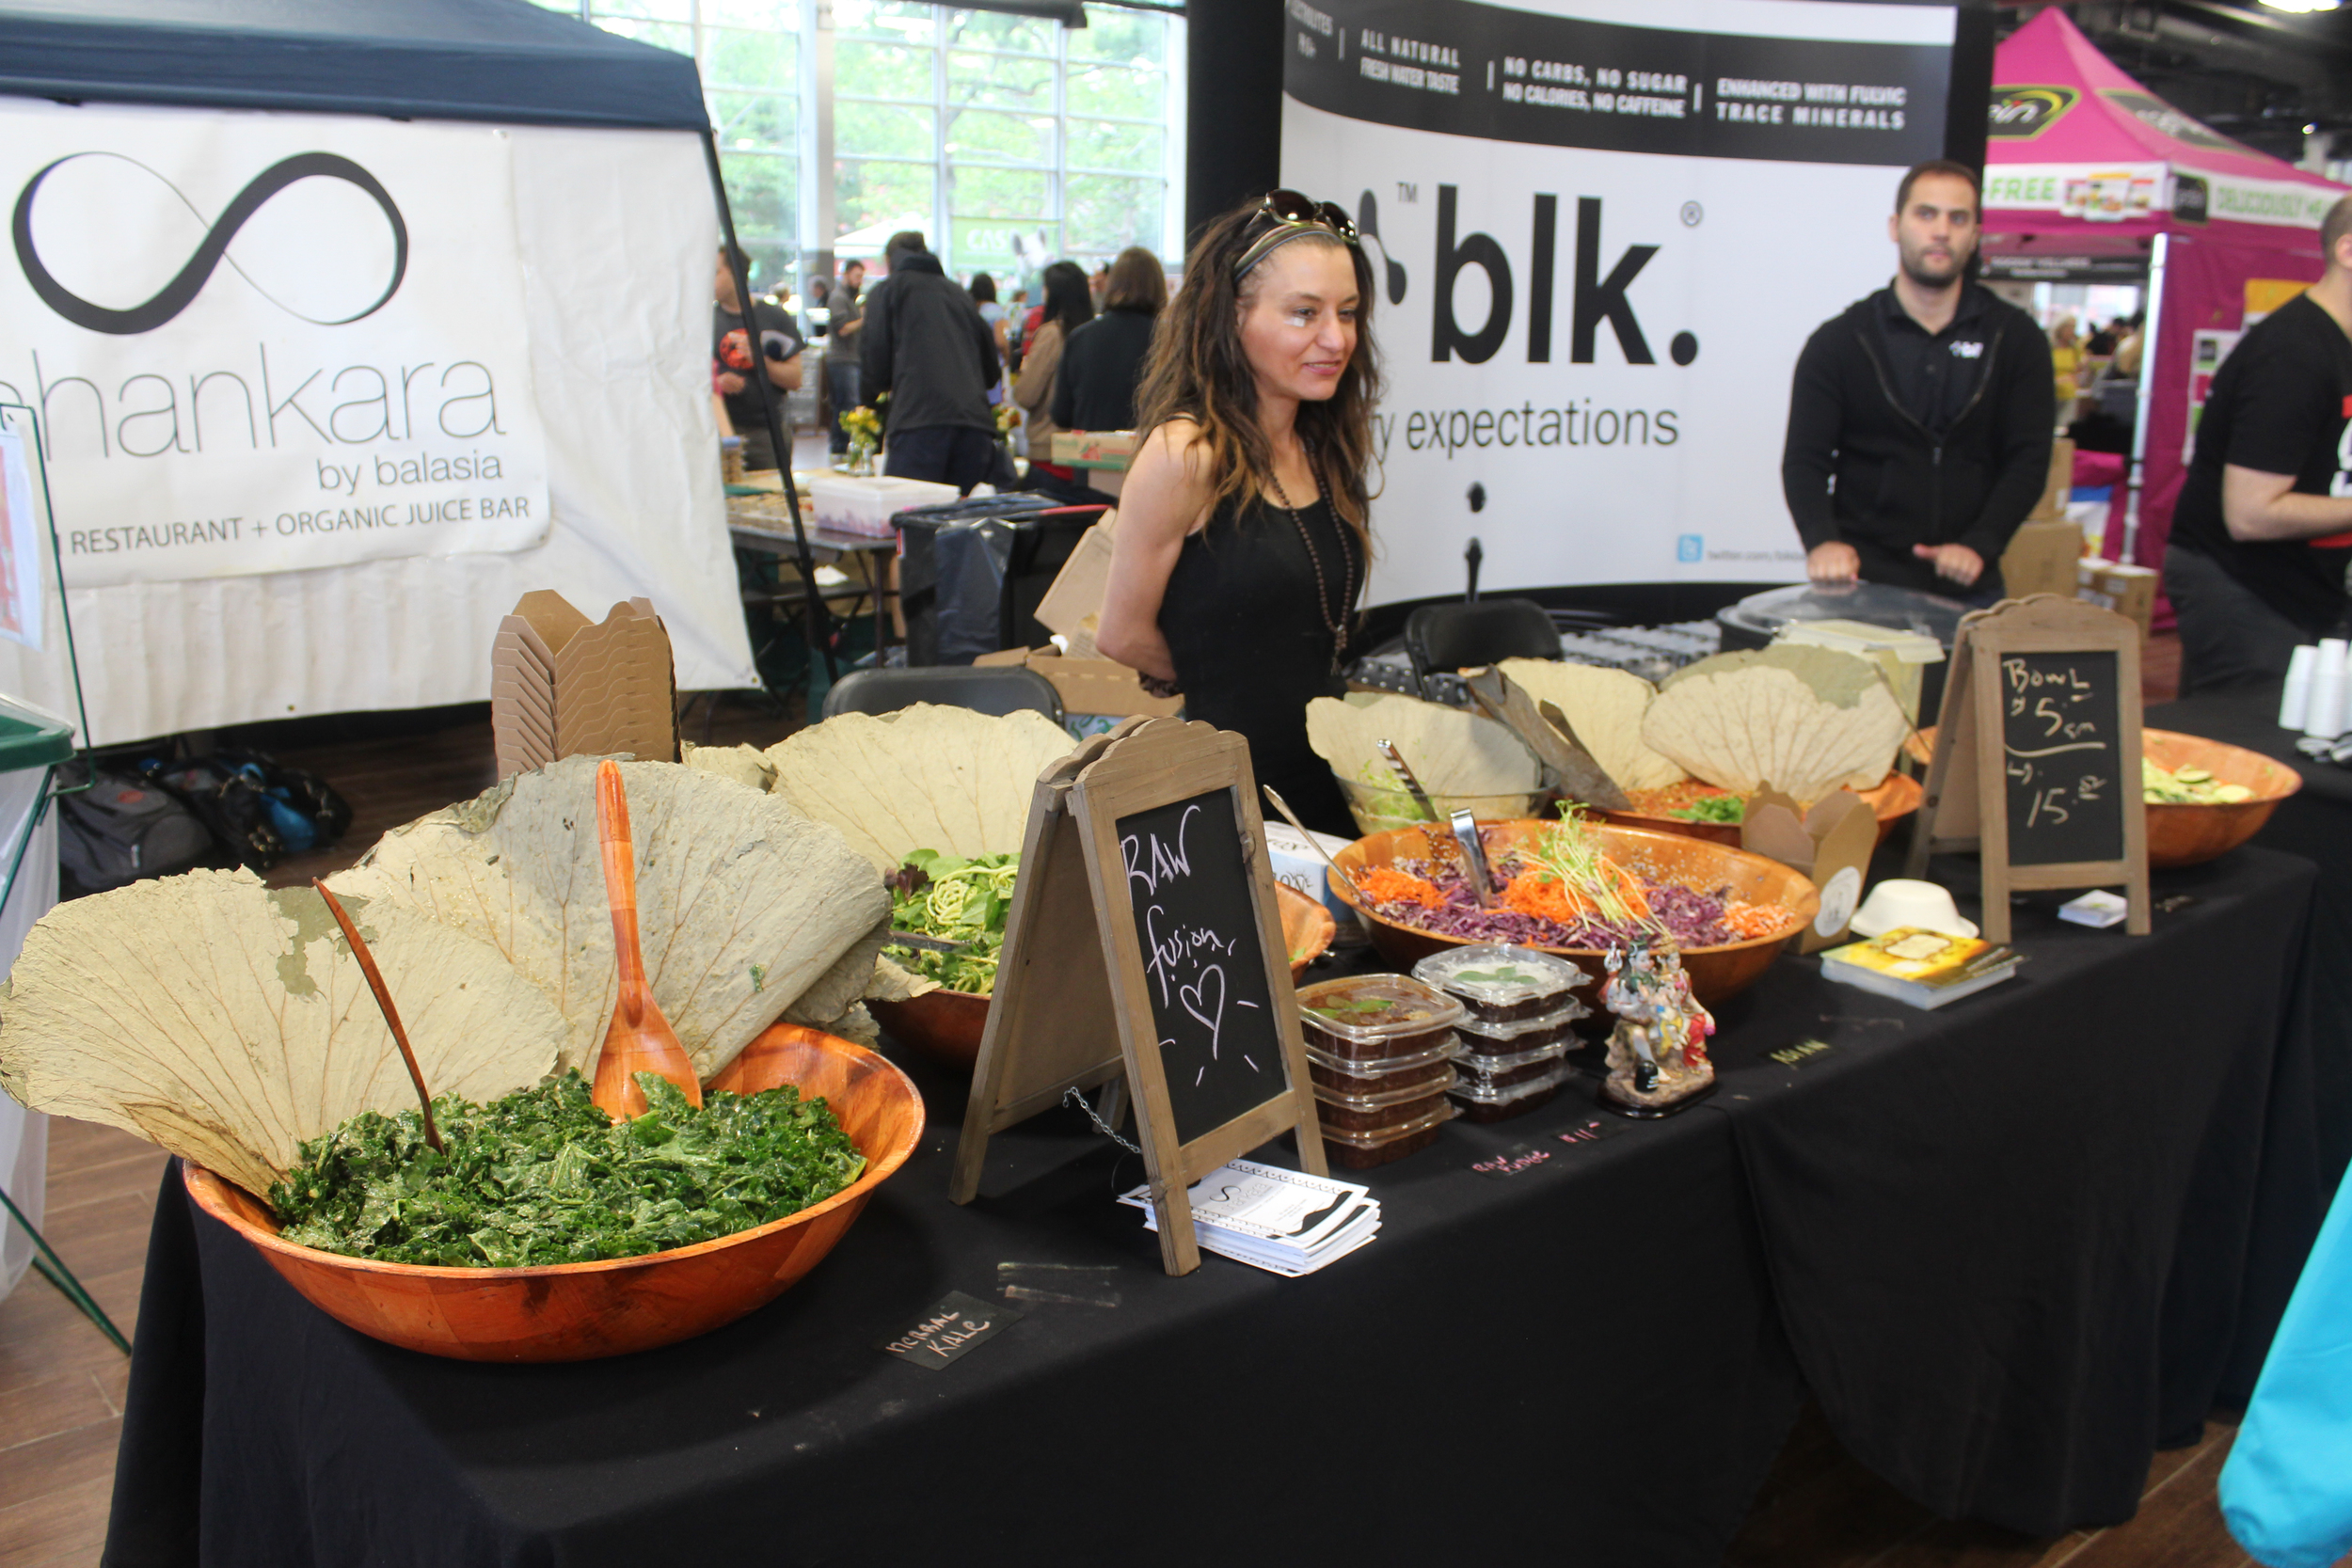 With greens galore, the expo area was the best place to munch on health foods during sessions.